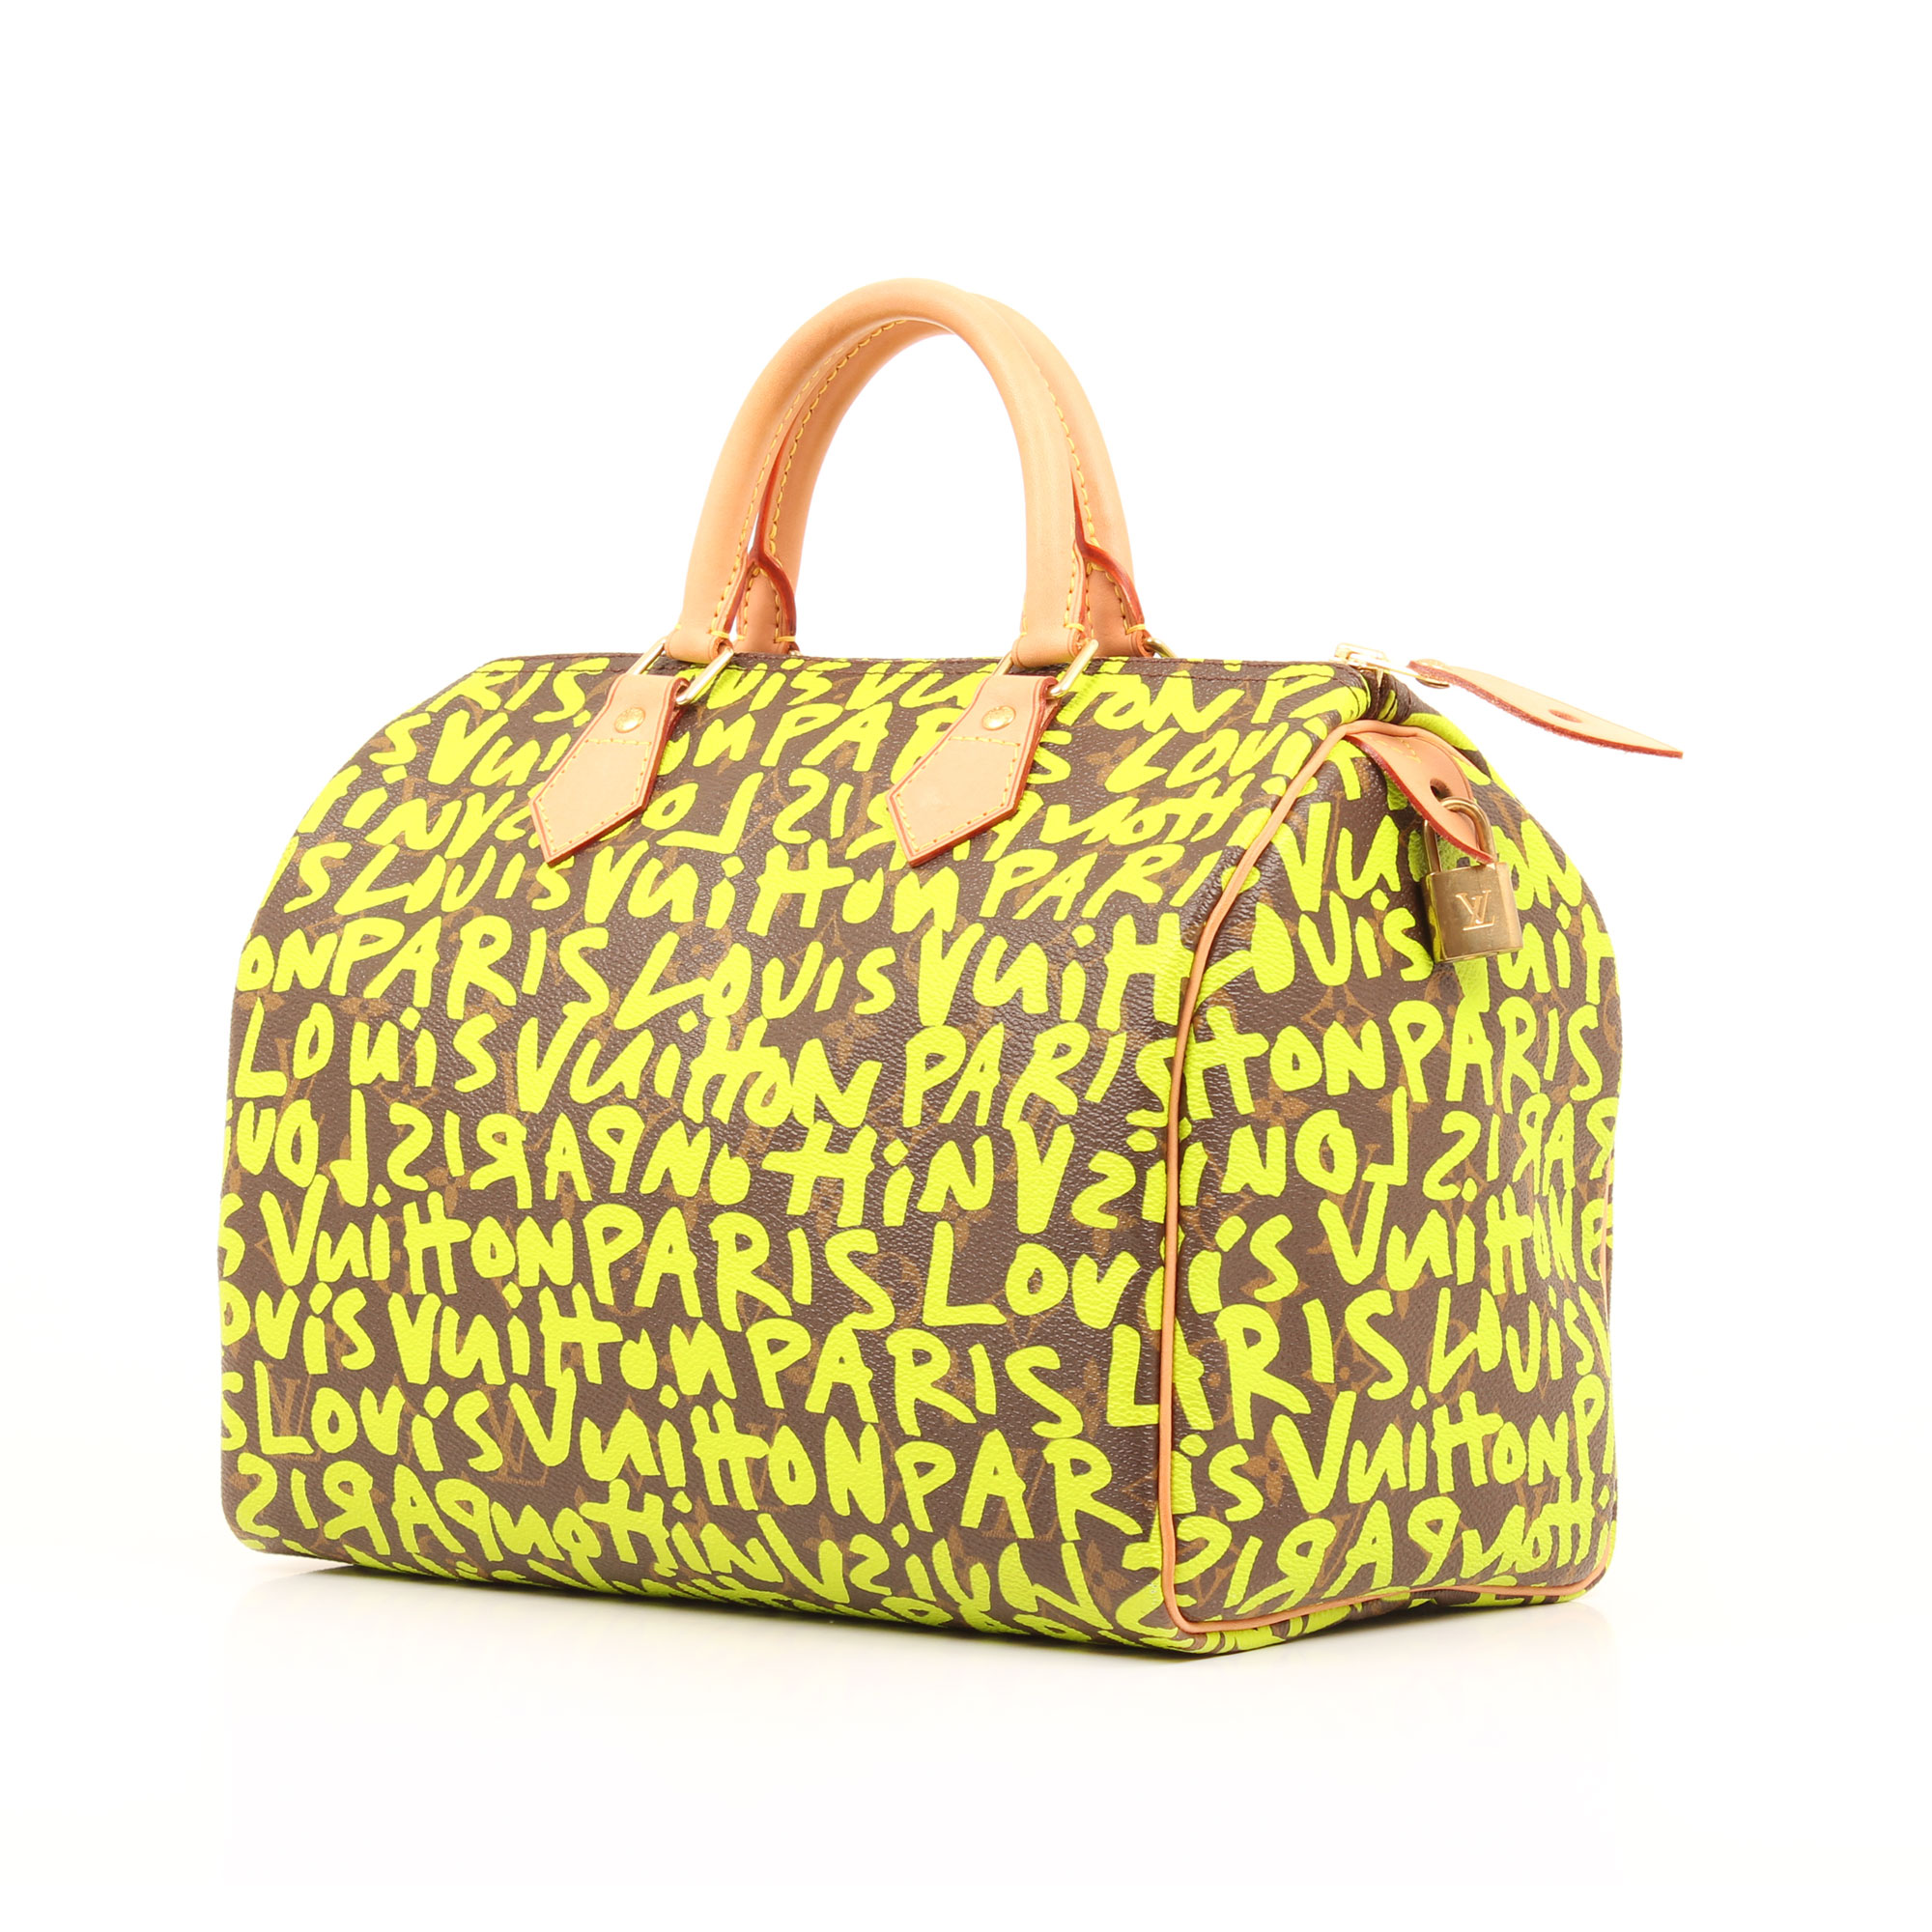 Imagen general del bolso louis vuitton speedy 30 graffiti verde